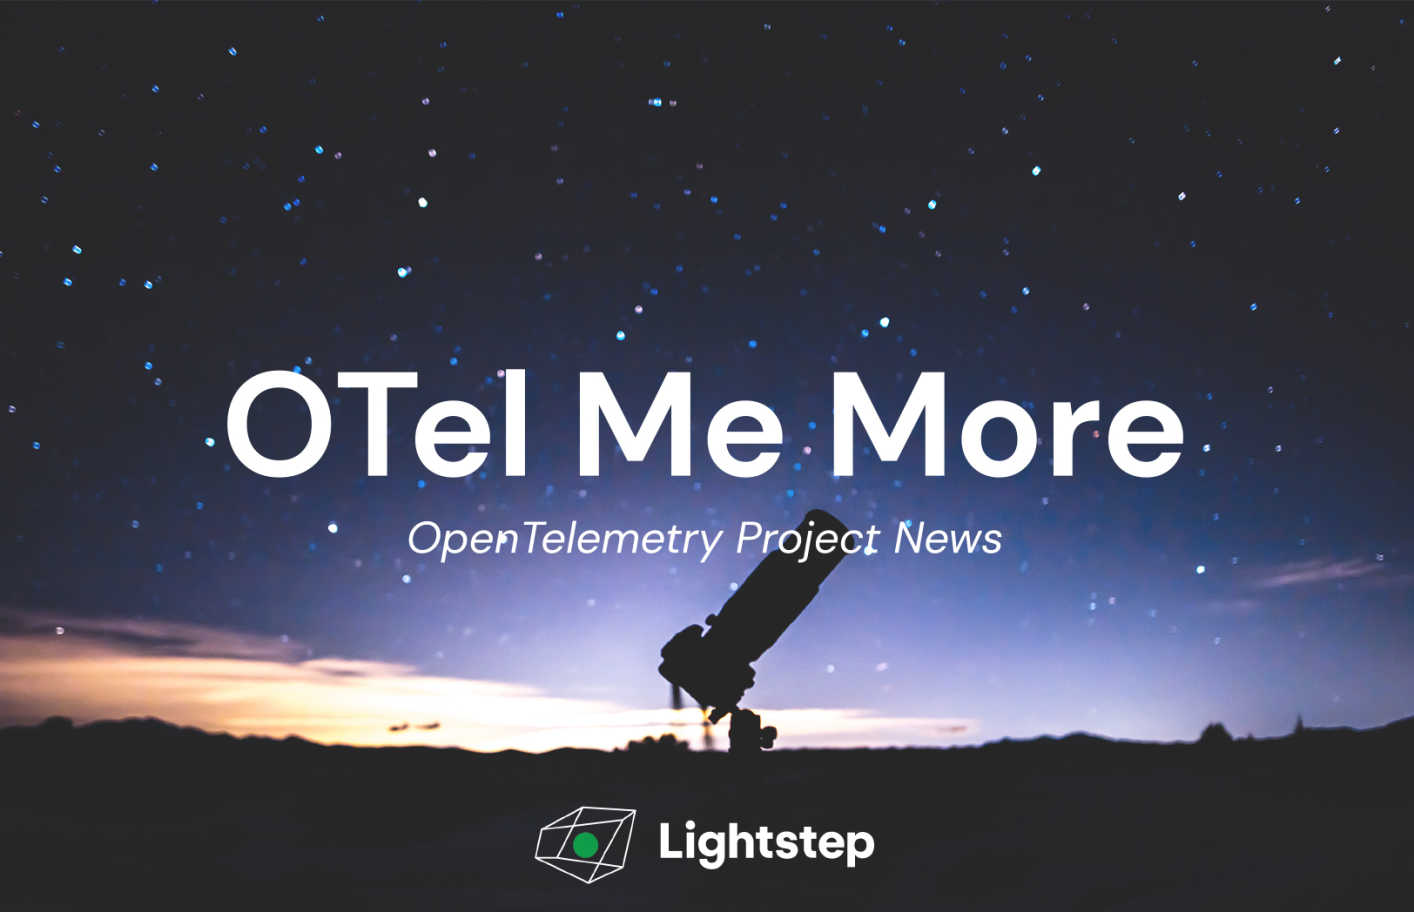 OTel Me More: OpenTelemetry Project News – Vol 31